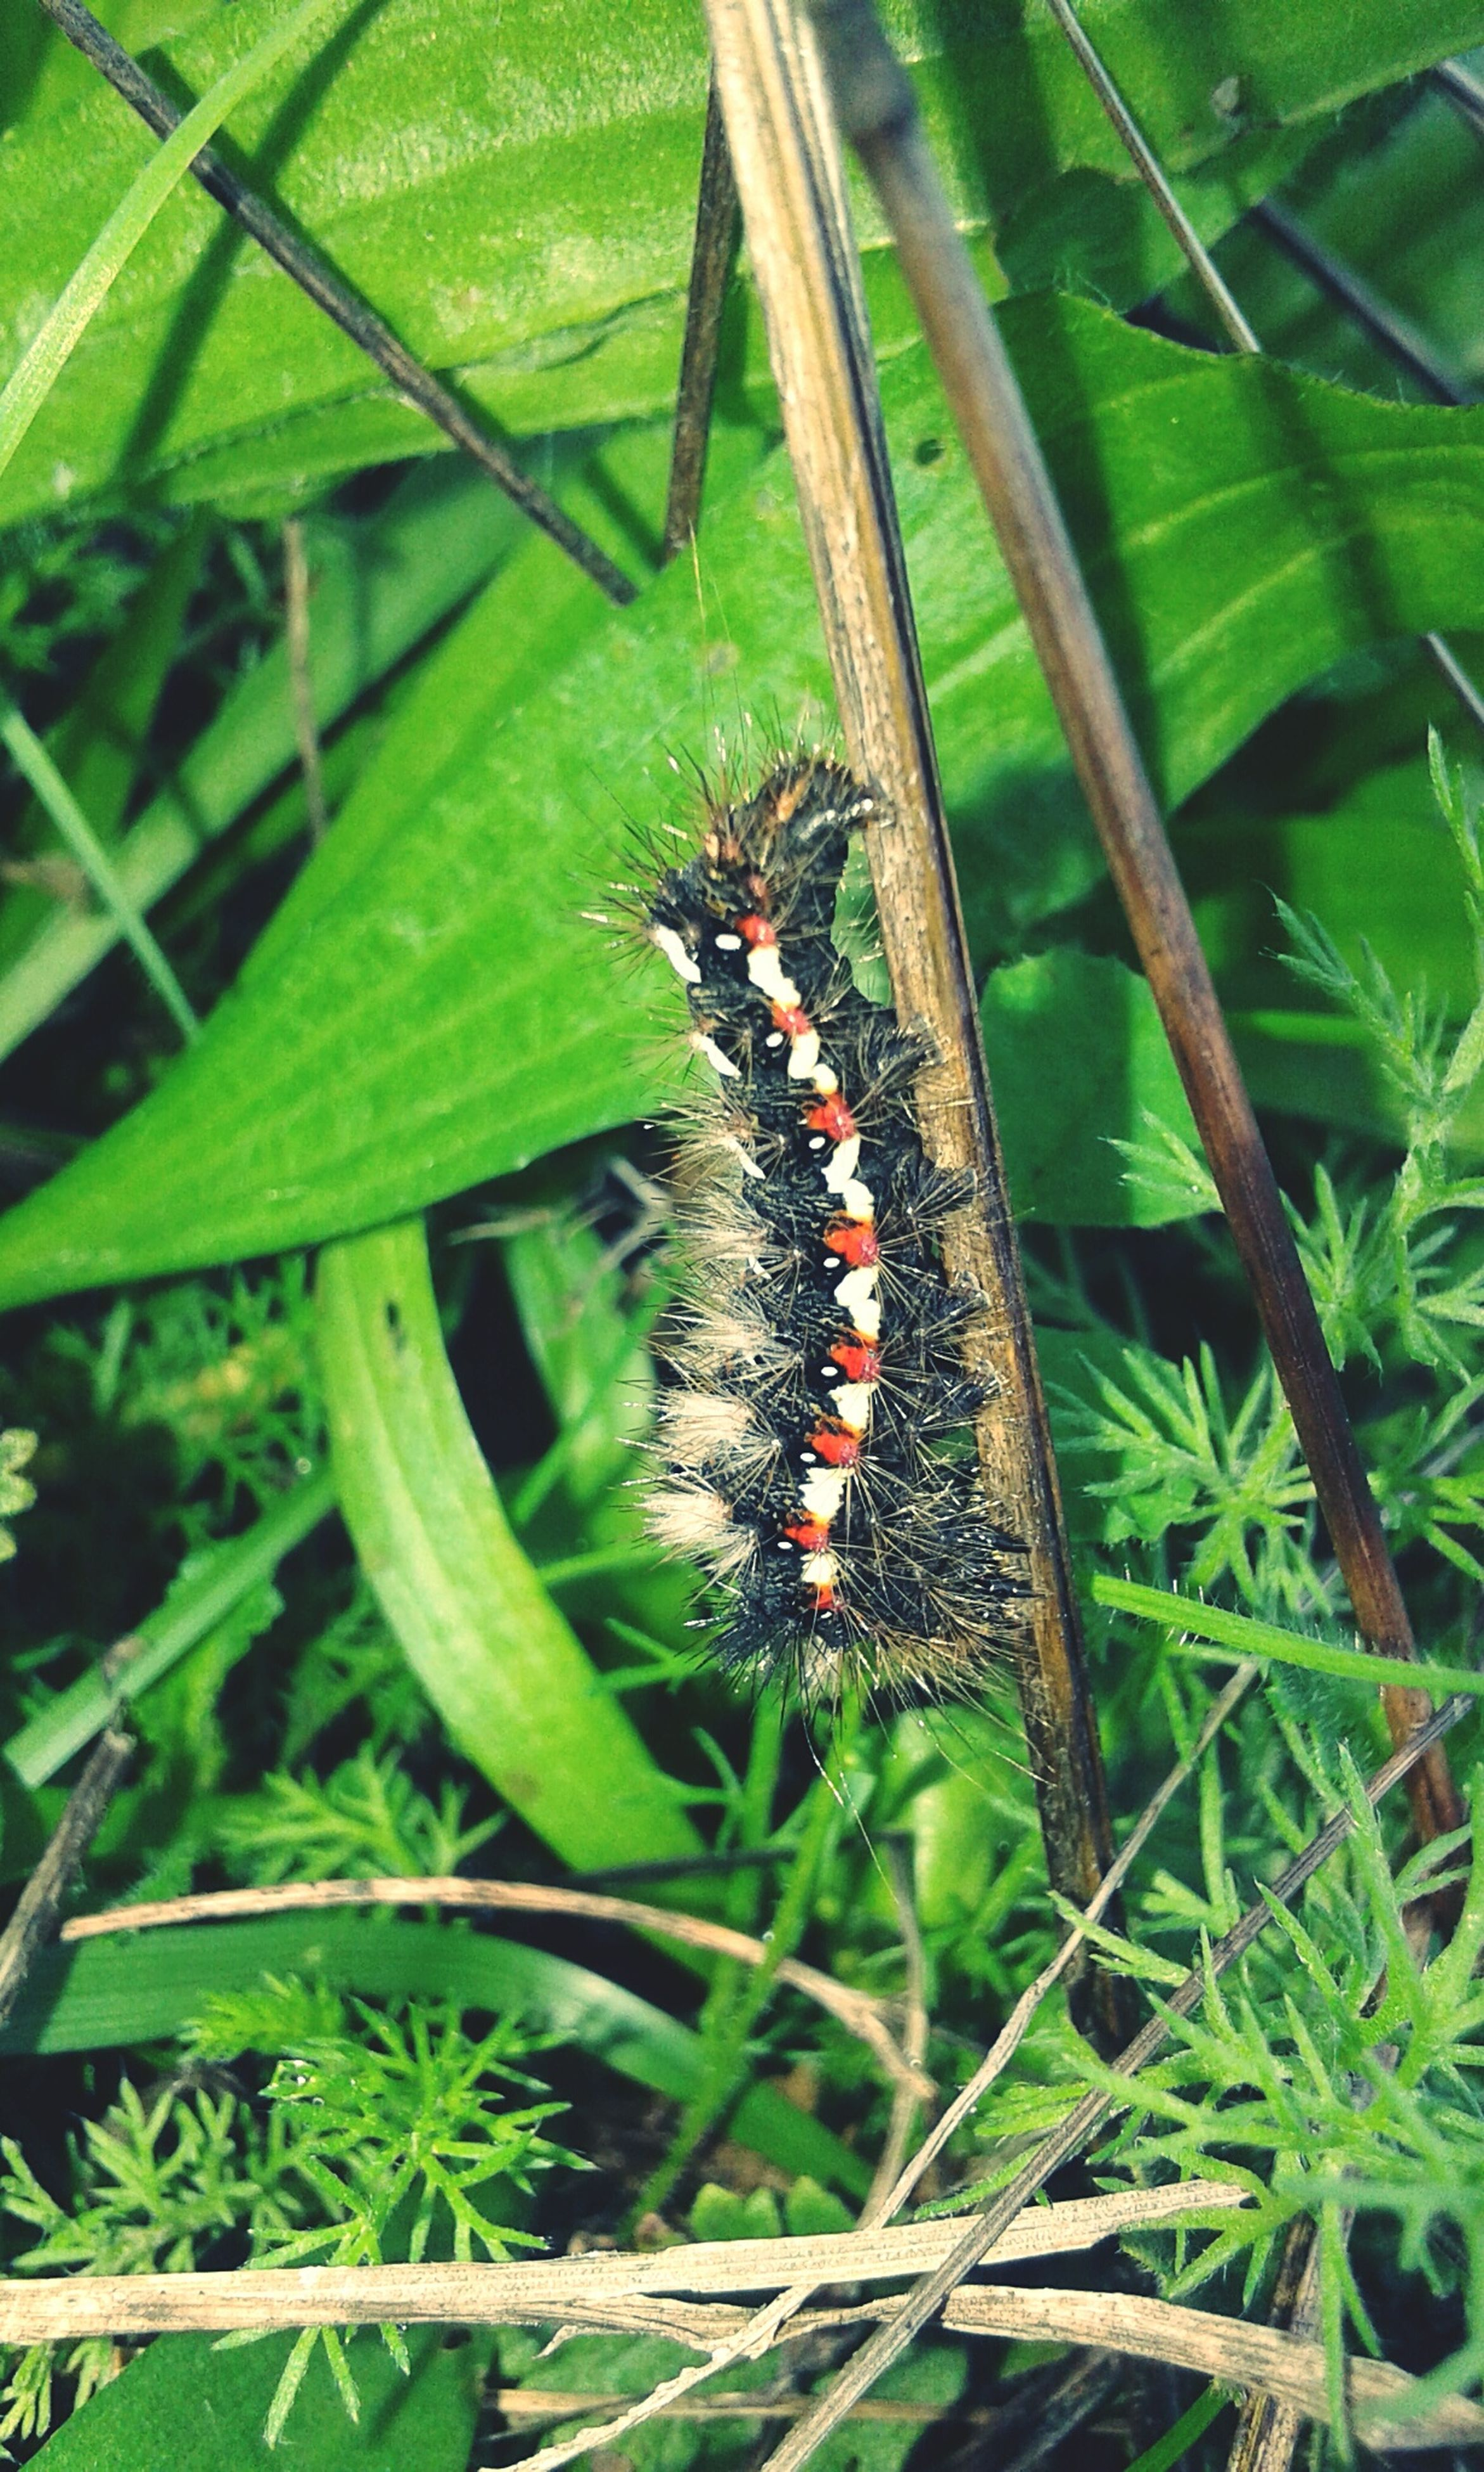 animal themes, one animal, animals in the wild, insect, green color, nature, plant, animal wildlife, no people, growth, outdoors, leaf, close-up, butterfly - insect, day, beauty in nature, grasshopper, mammal